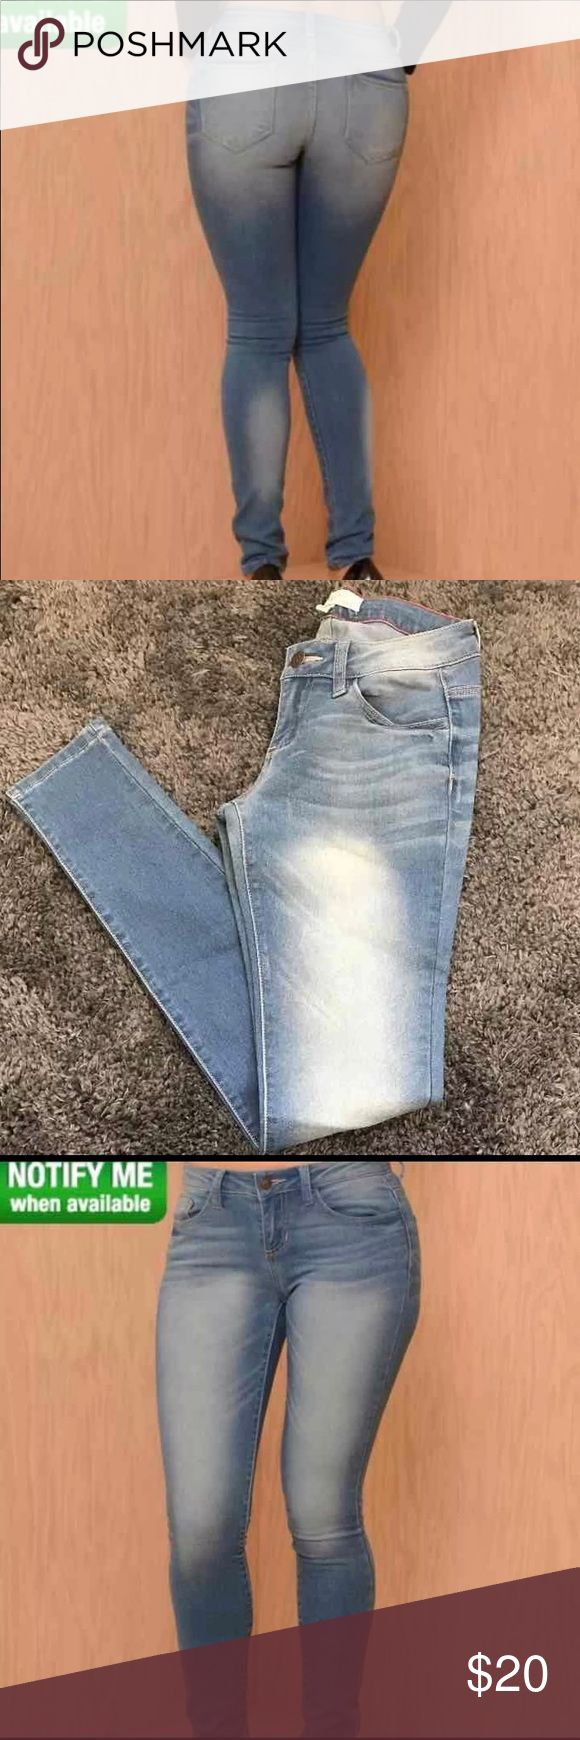 """Fashion Nova """"East Coast Jeans"""" style size 3 These are sold out at Fashion Nova (google name for more images or search on their website)  They are brand new with tags,great condition, never worn I e gain weight so didn't get a chance to wear them! Fashion Nova Jeans Skinny"""